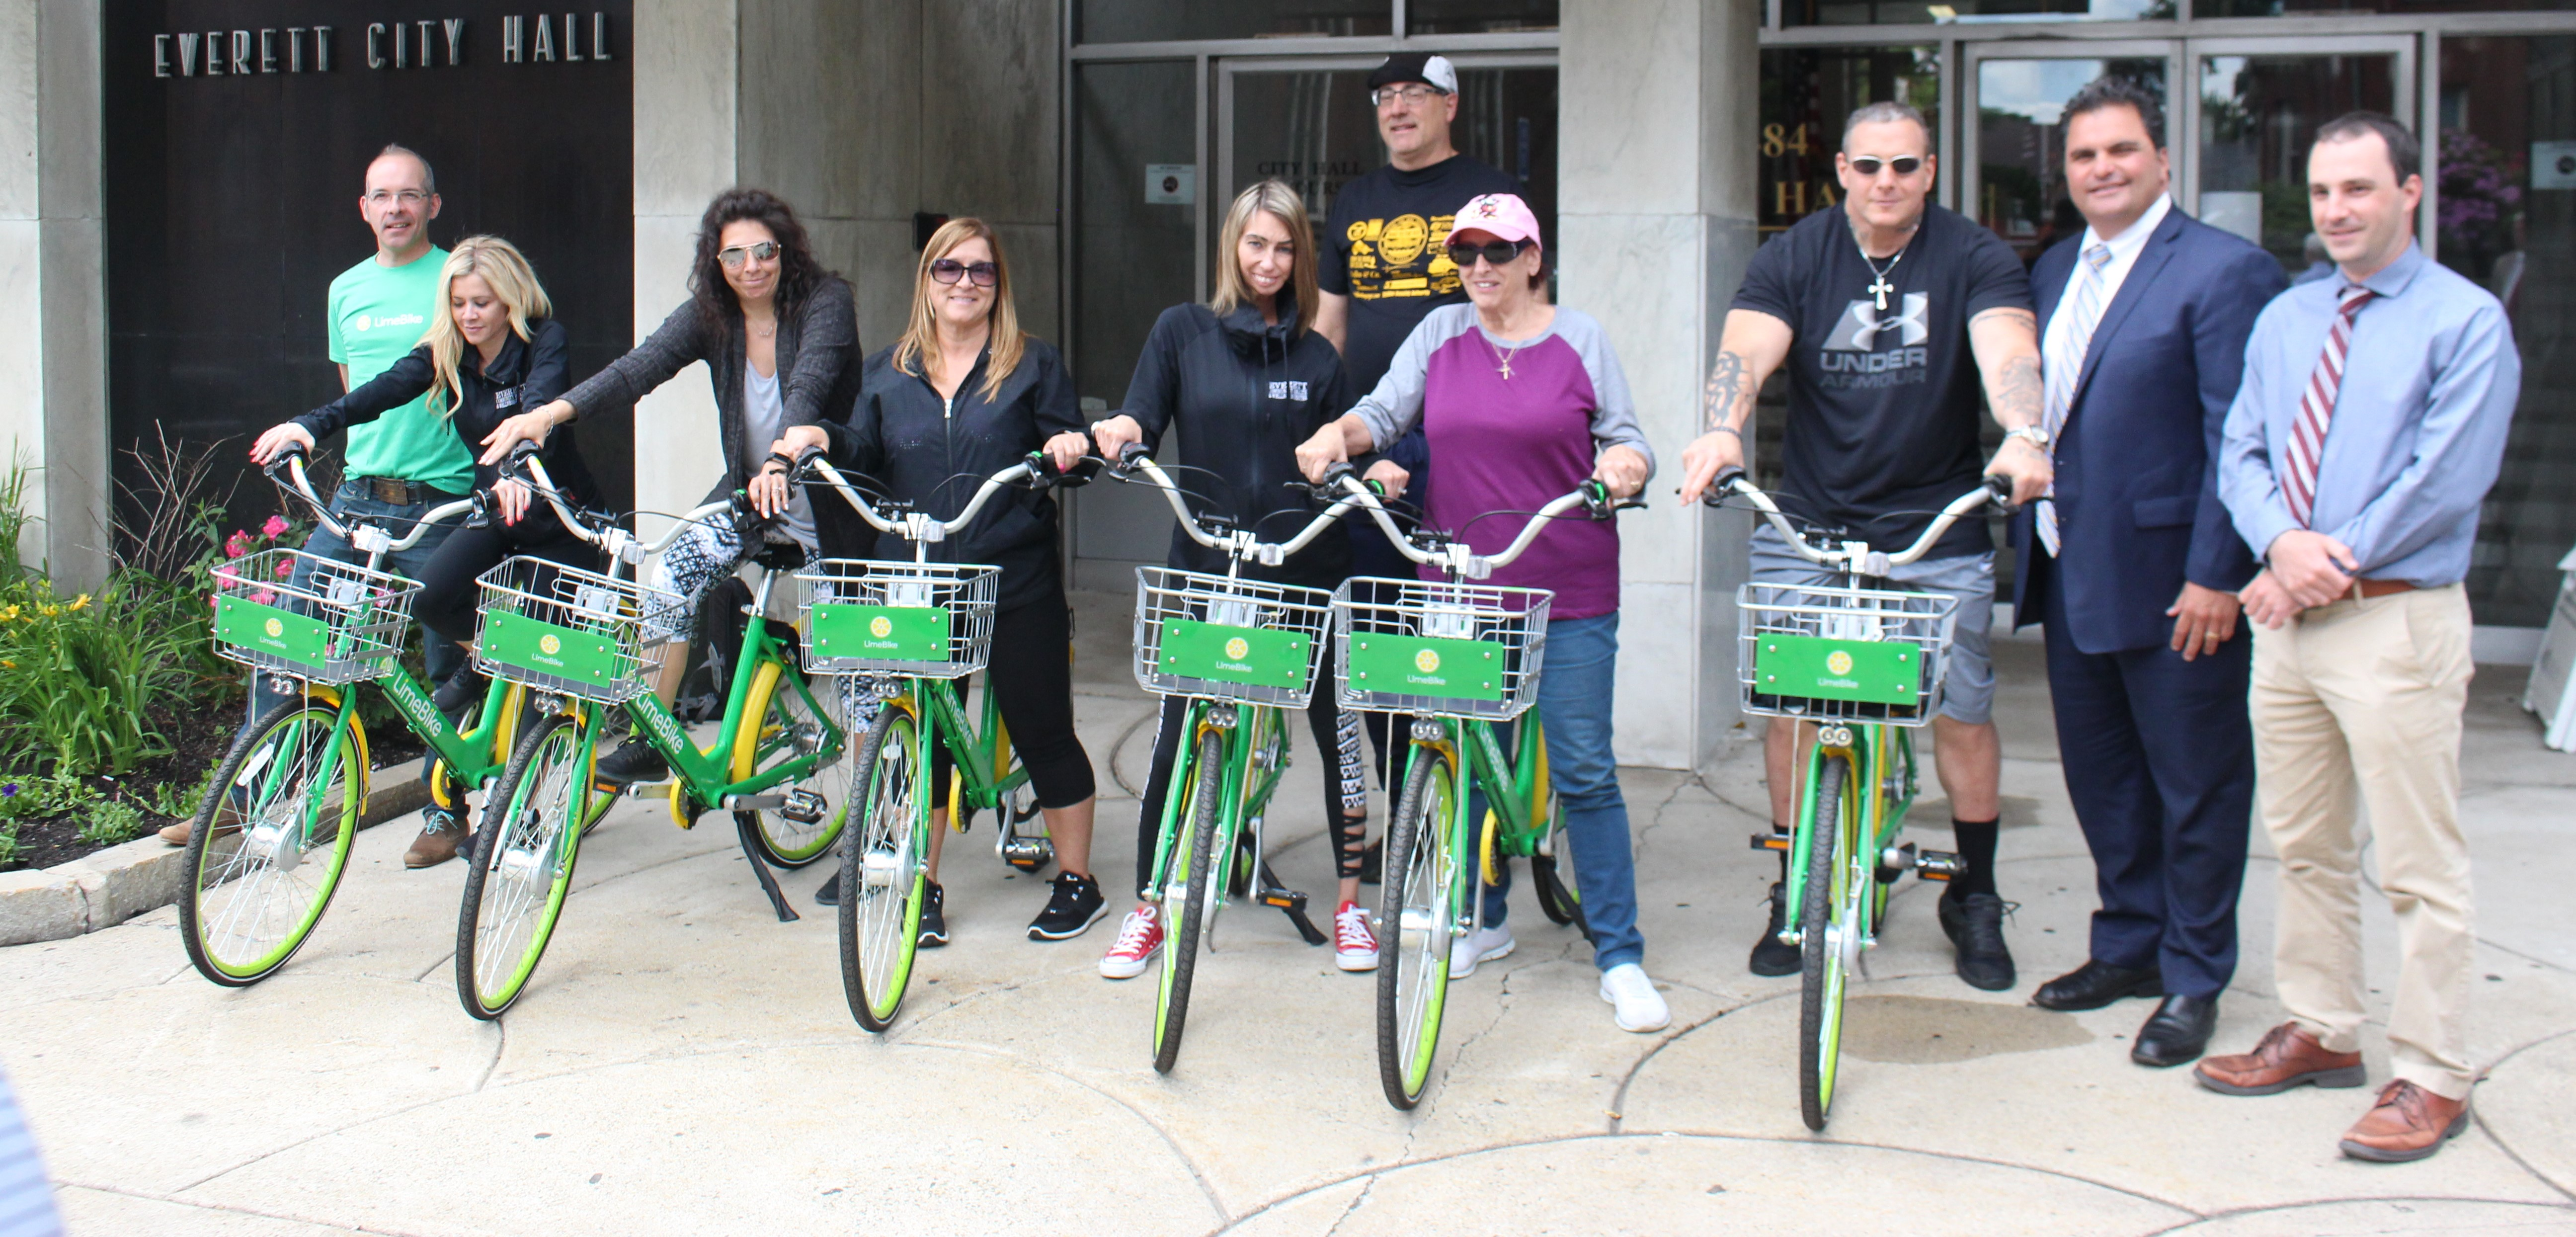 Mayor Carlo DeMaria, Malden City Councillor Steve Winslow, Transportation Planner Jay Monty, Scott Mullen of Lime Bike, Wellness Center Employees and residents are shown with the city's new Lime Bikes during the unveiling ceremony Thursday afternoon.